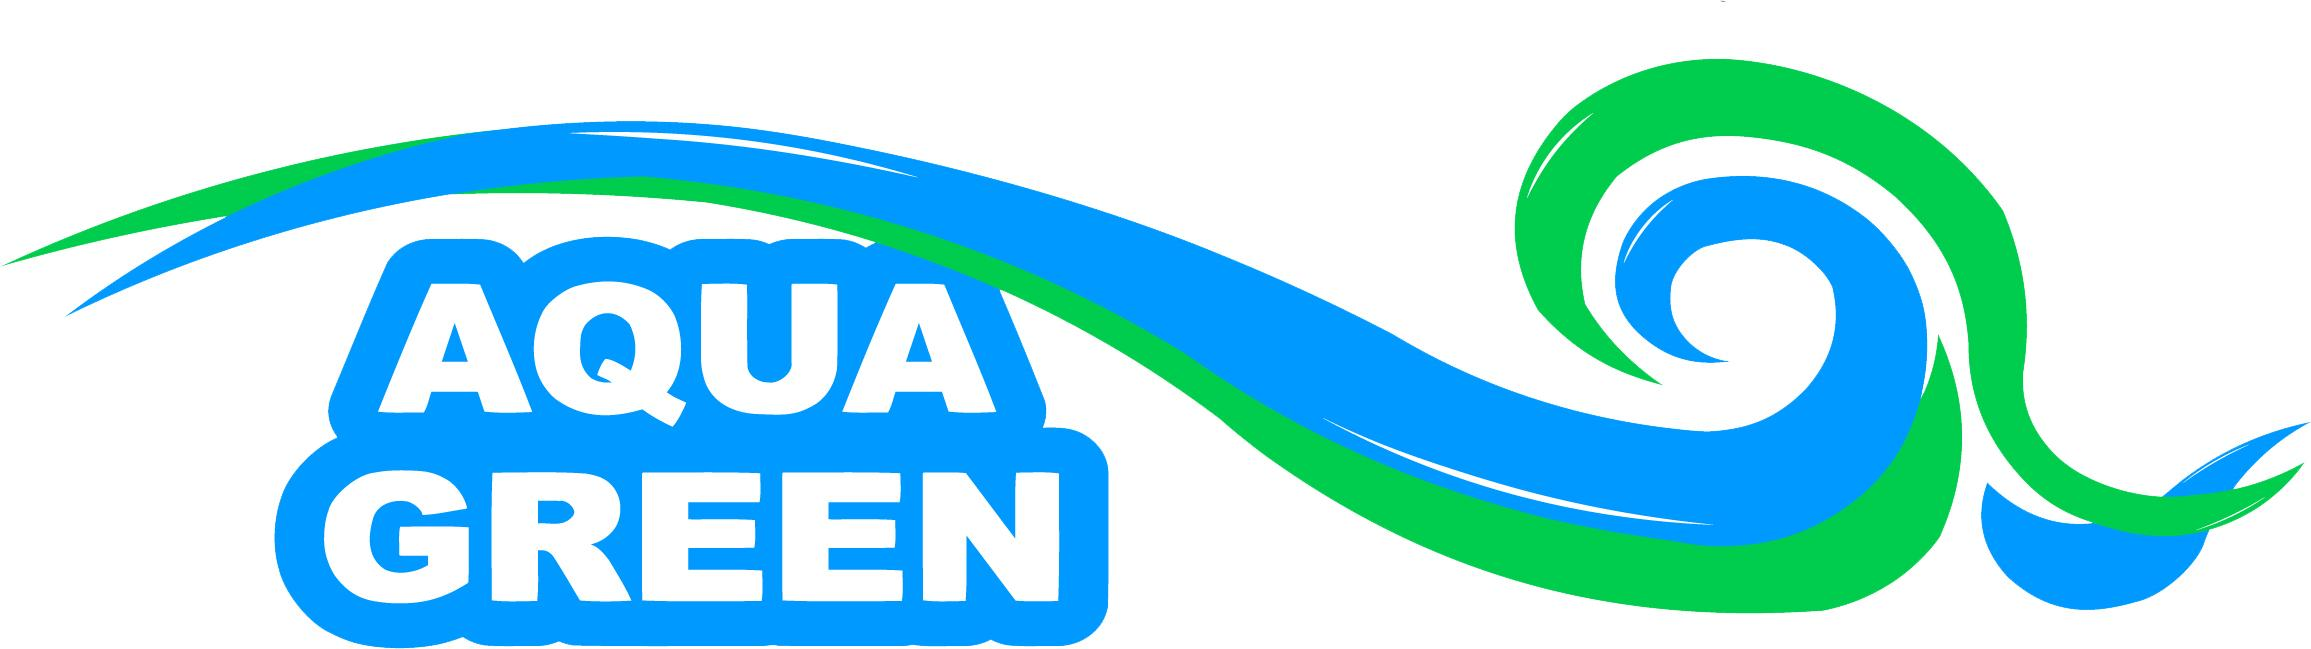 aquagreen logo_9